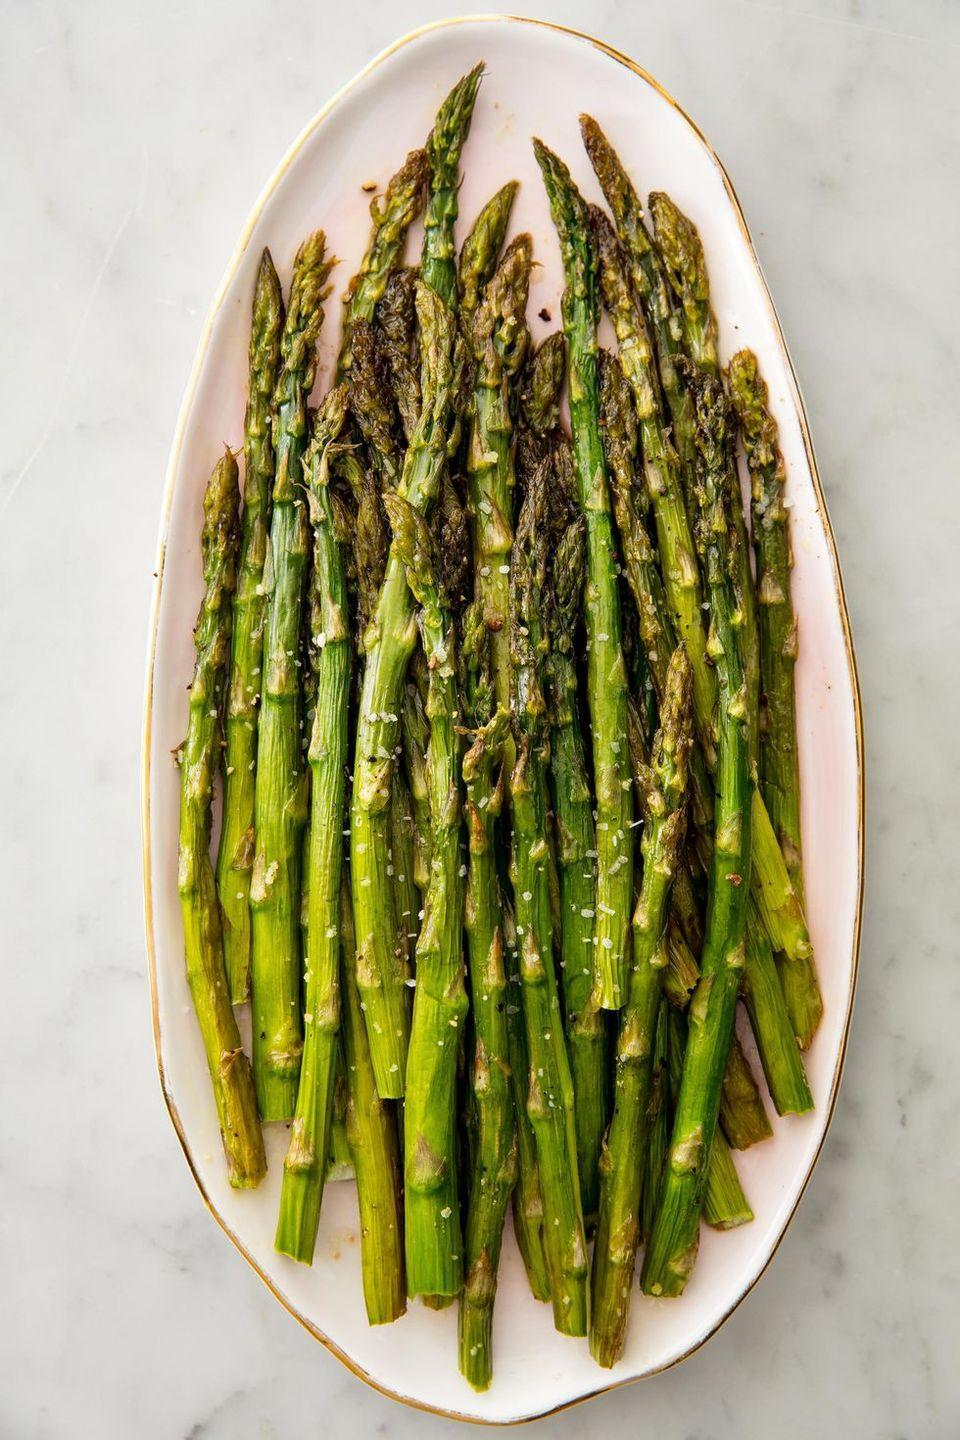 """<p>There are many ways you can <a href=""""https://www.delish.com/uk/cooking/a29557777/cook-asparagus/"""" rel=""""nofollow noopener"""" target=""""_blank"""" data-ylk=""""slk:cook asparagus"""" class=""""link rapid-noclick-resp"""">cook asparagus</a>, but roasting is our absolute favourite. When the stalks darken and crisp, they're not burning, they're developing more flavour.</p><p>Get the <a href=""""https://www.delish.com/uk/cooking/recipes/a31219635/oven-roasted-asparagus-recipe/"""" rel=""""nofollow noopener"""" target=""""_blank"""" data-ylk=""""slk:Roasted Asparagus"""" class=""""link rapid-noclick-resp"""">Roasted Asparagus</a> recipe.</p>"""